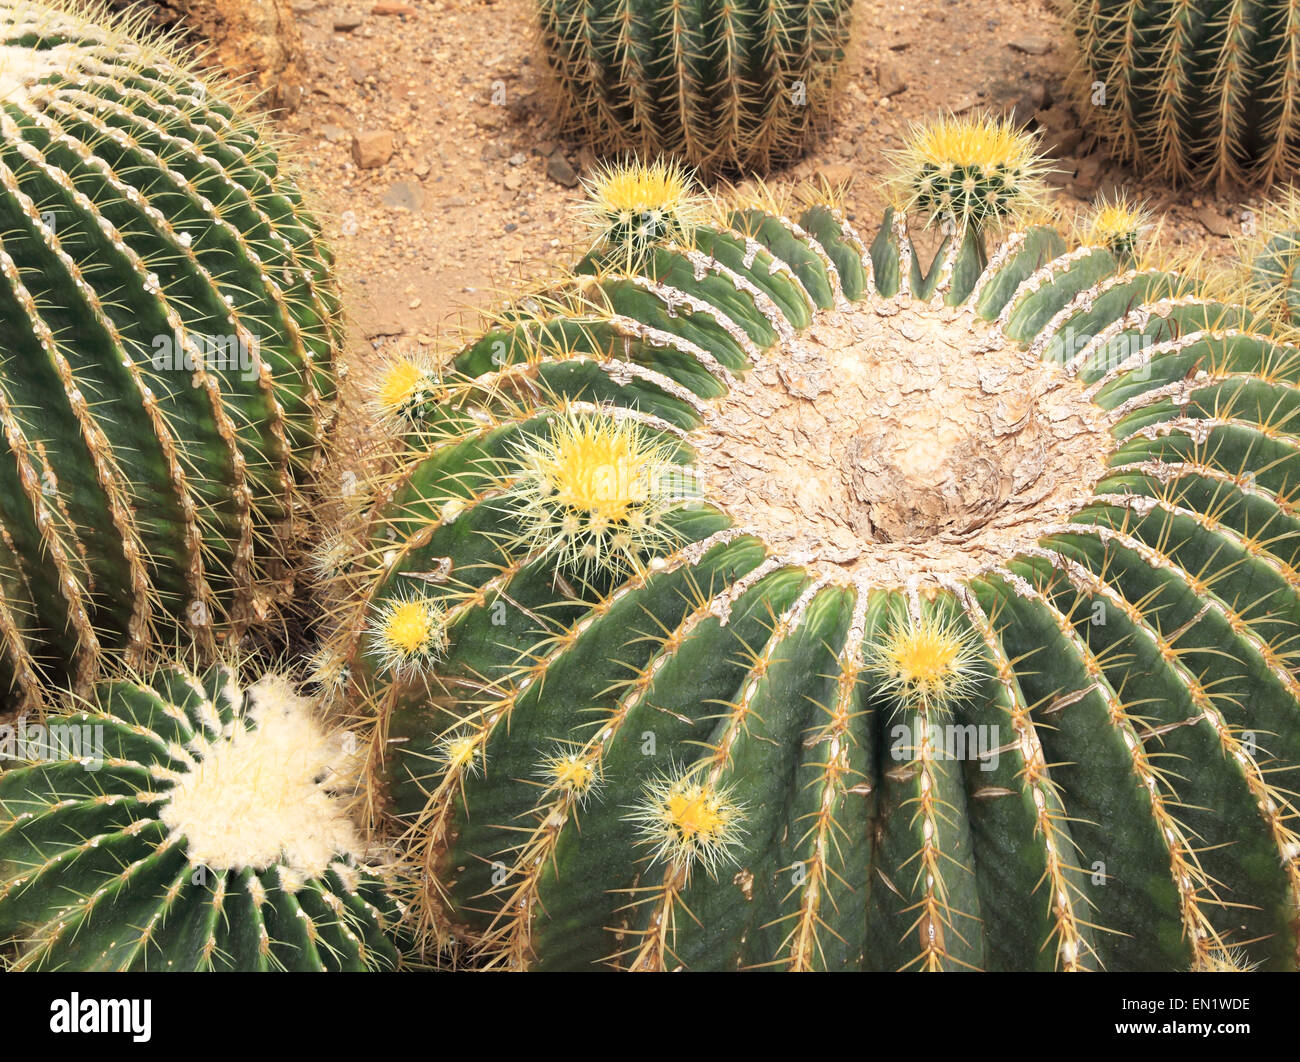 cactus plant that thrive in the desert. - Stock Image